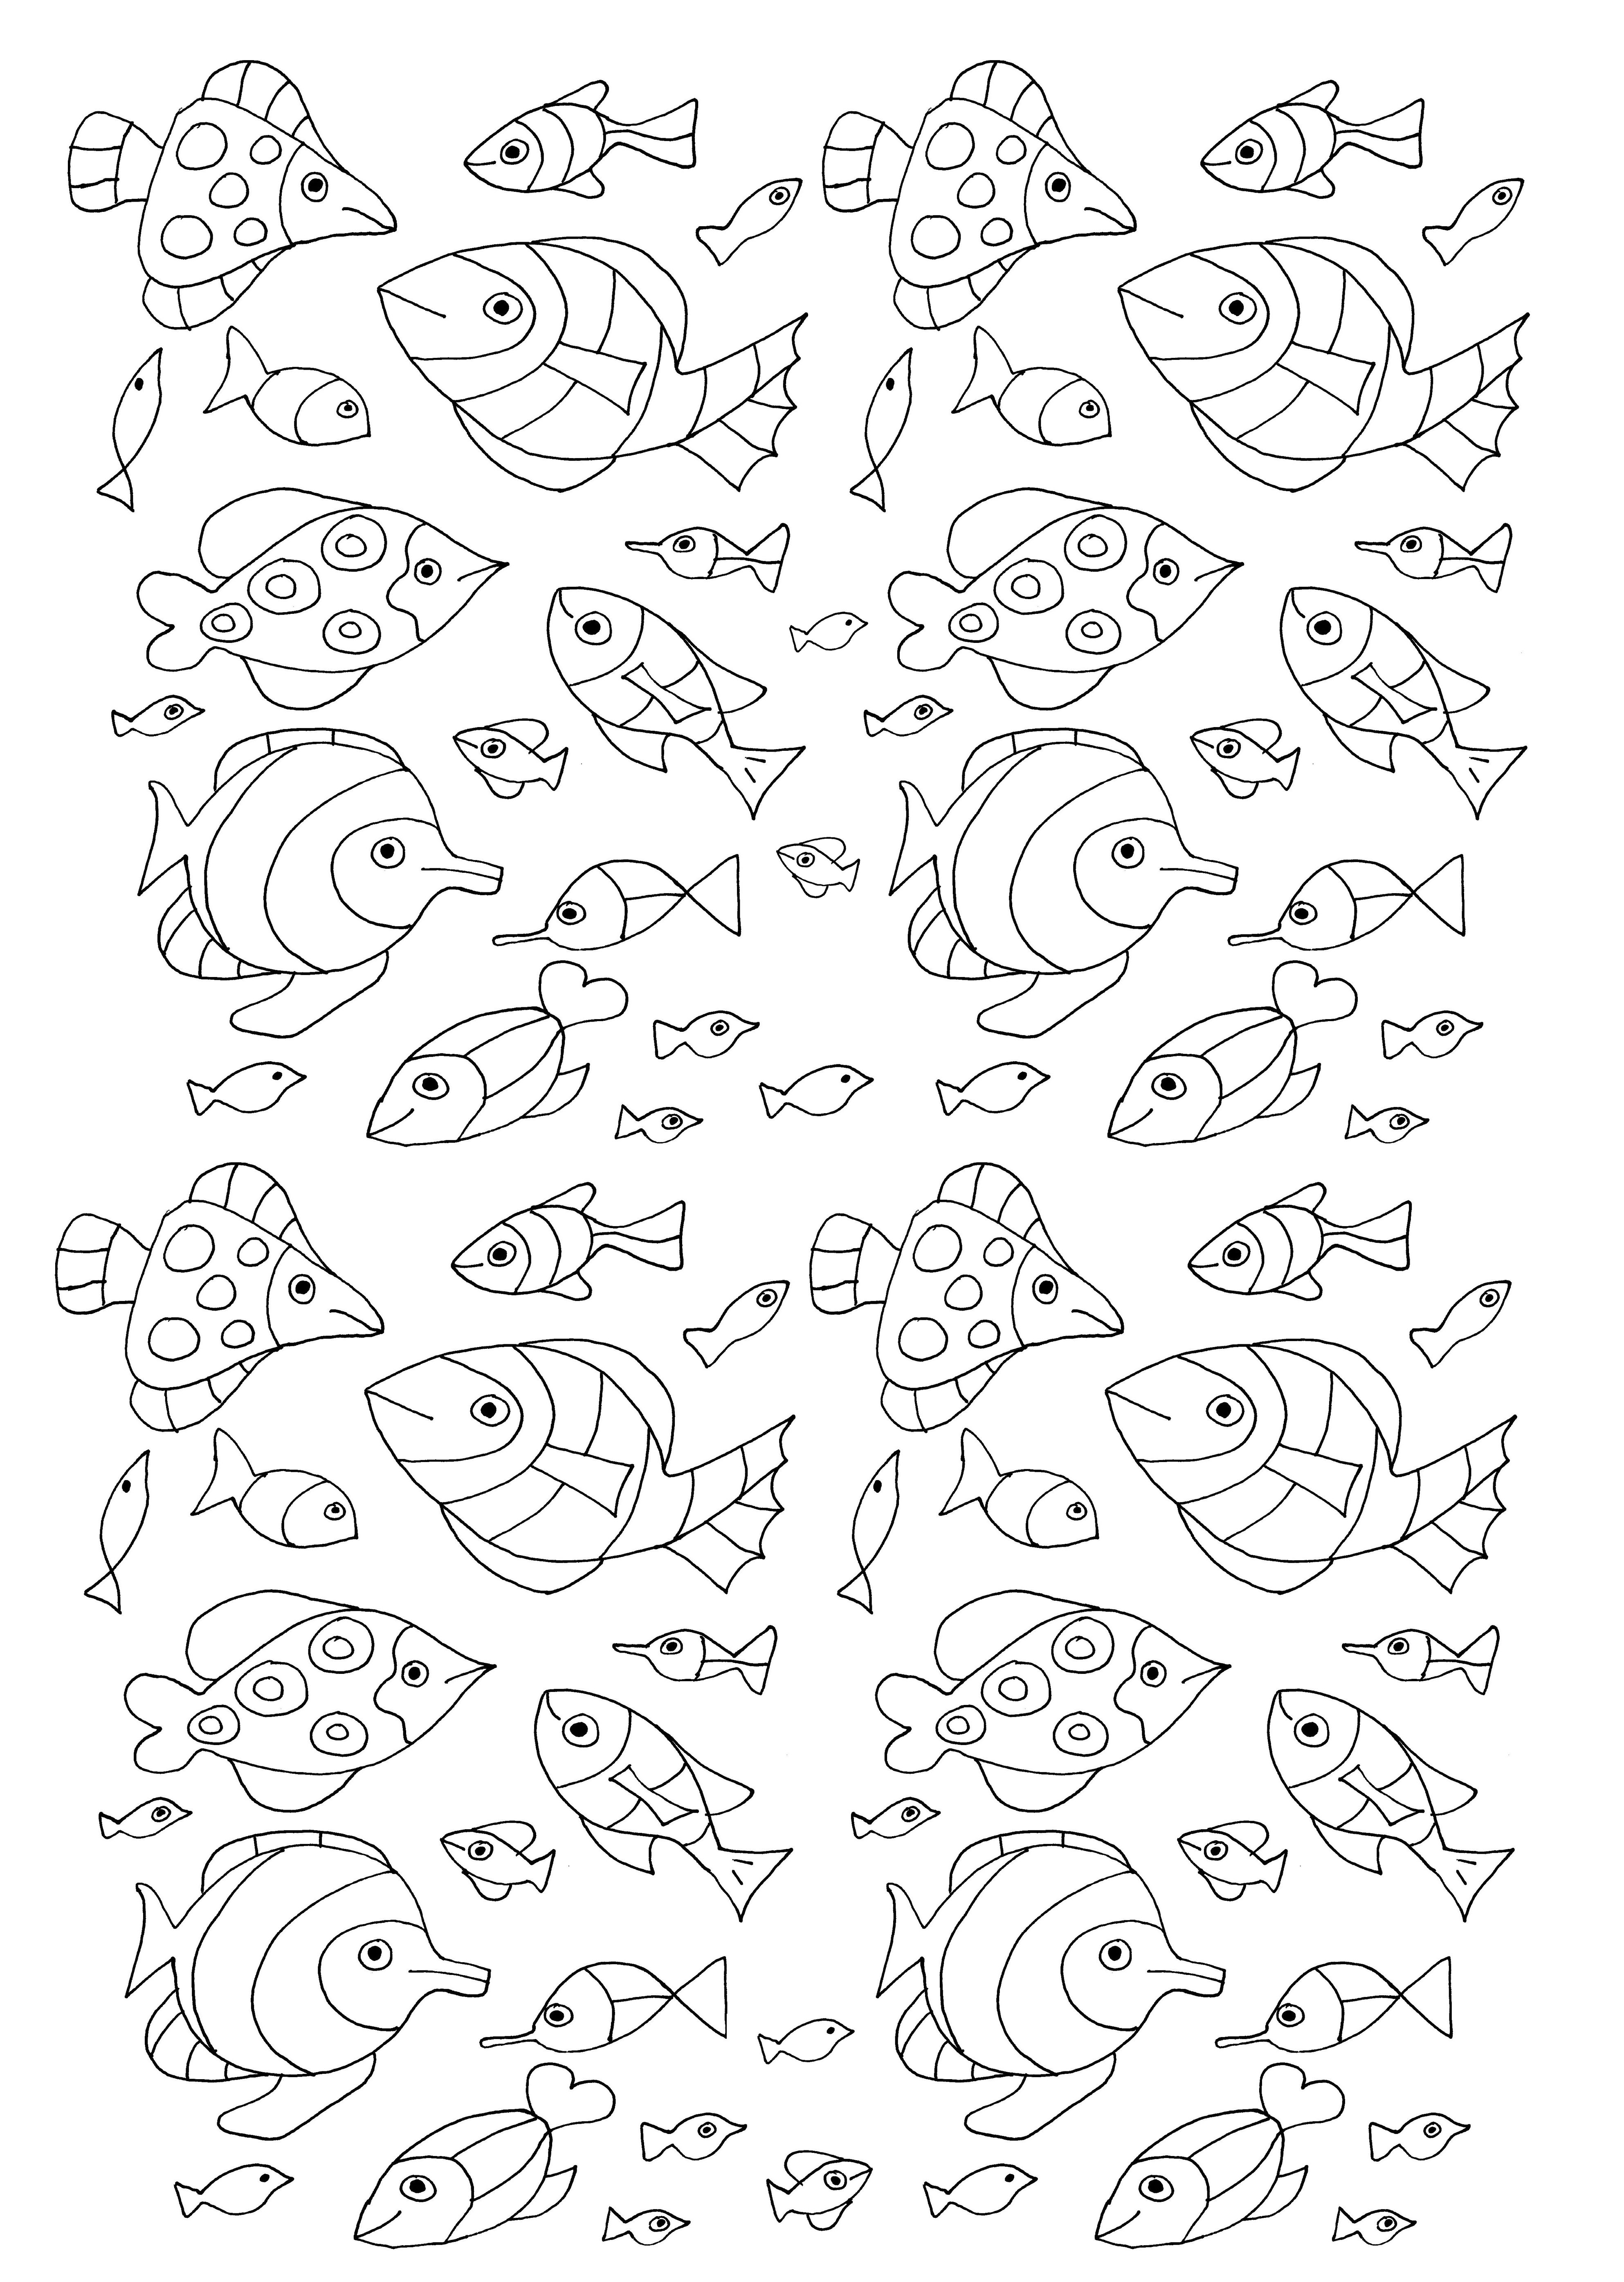 100 fish animals coloring pages for adults justcolor